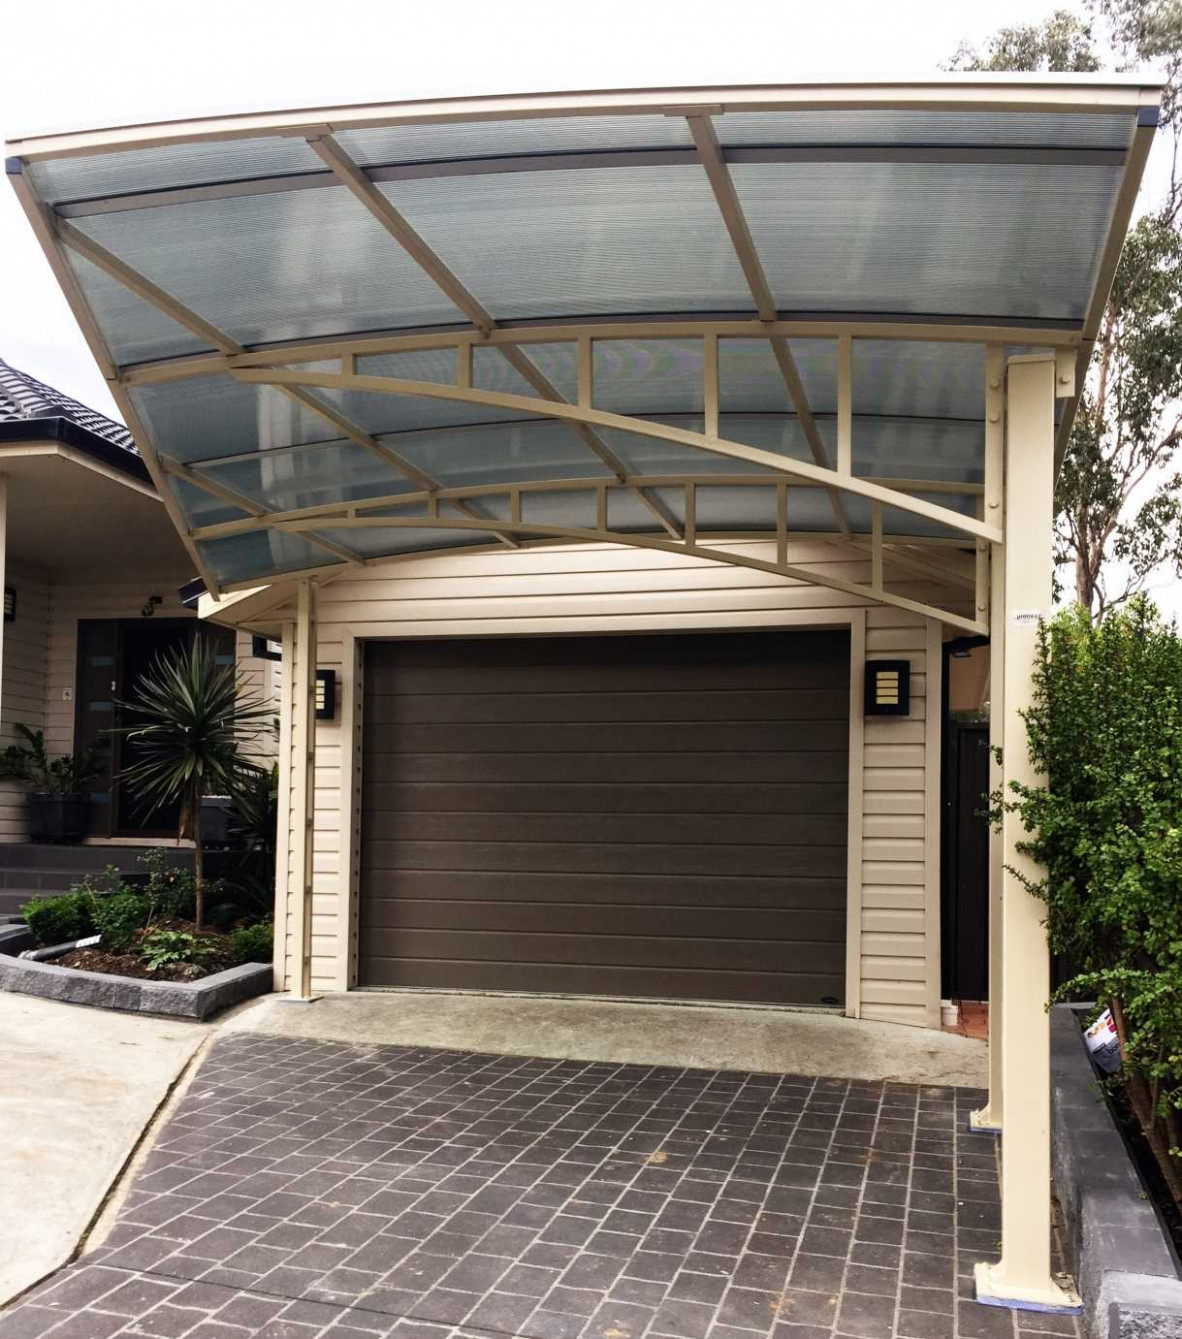 Carports & Shelters In Sydney   Pioneer Shade Structures Modern Carport Designs Plans